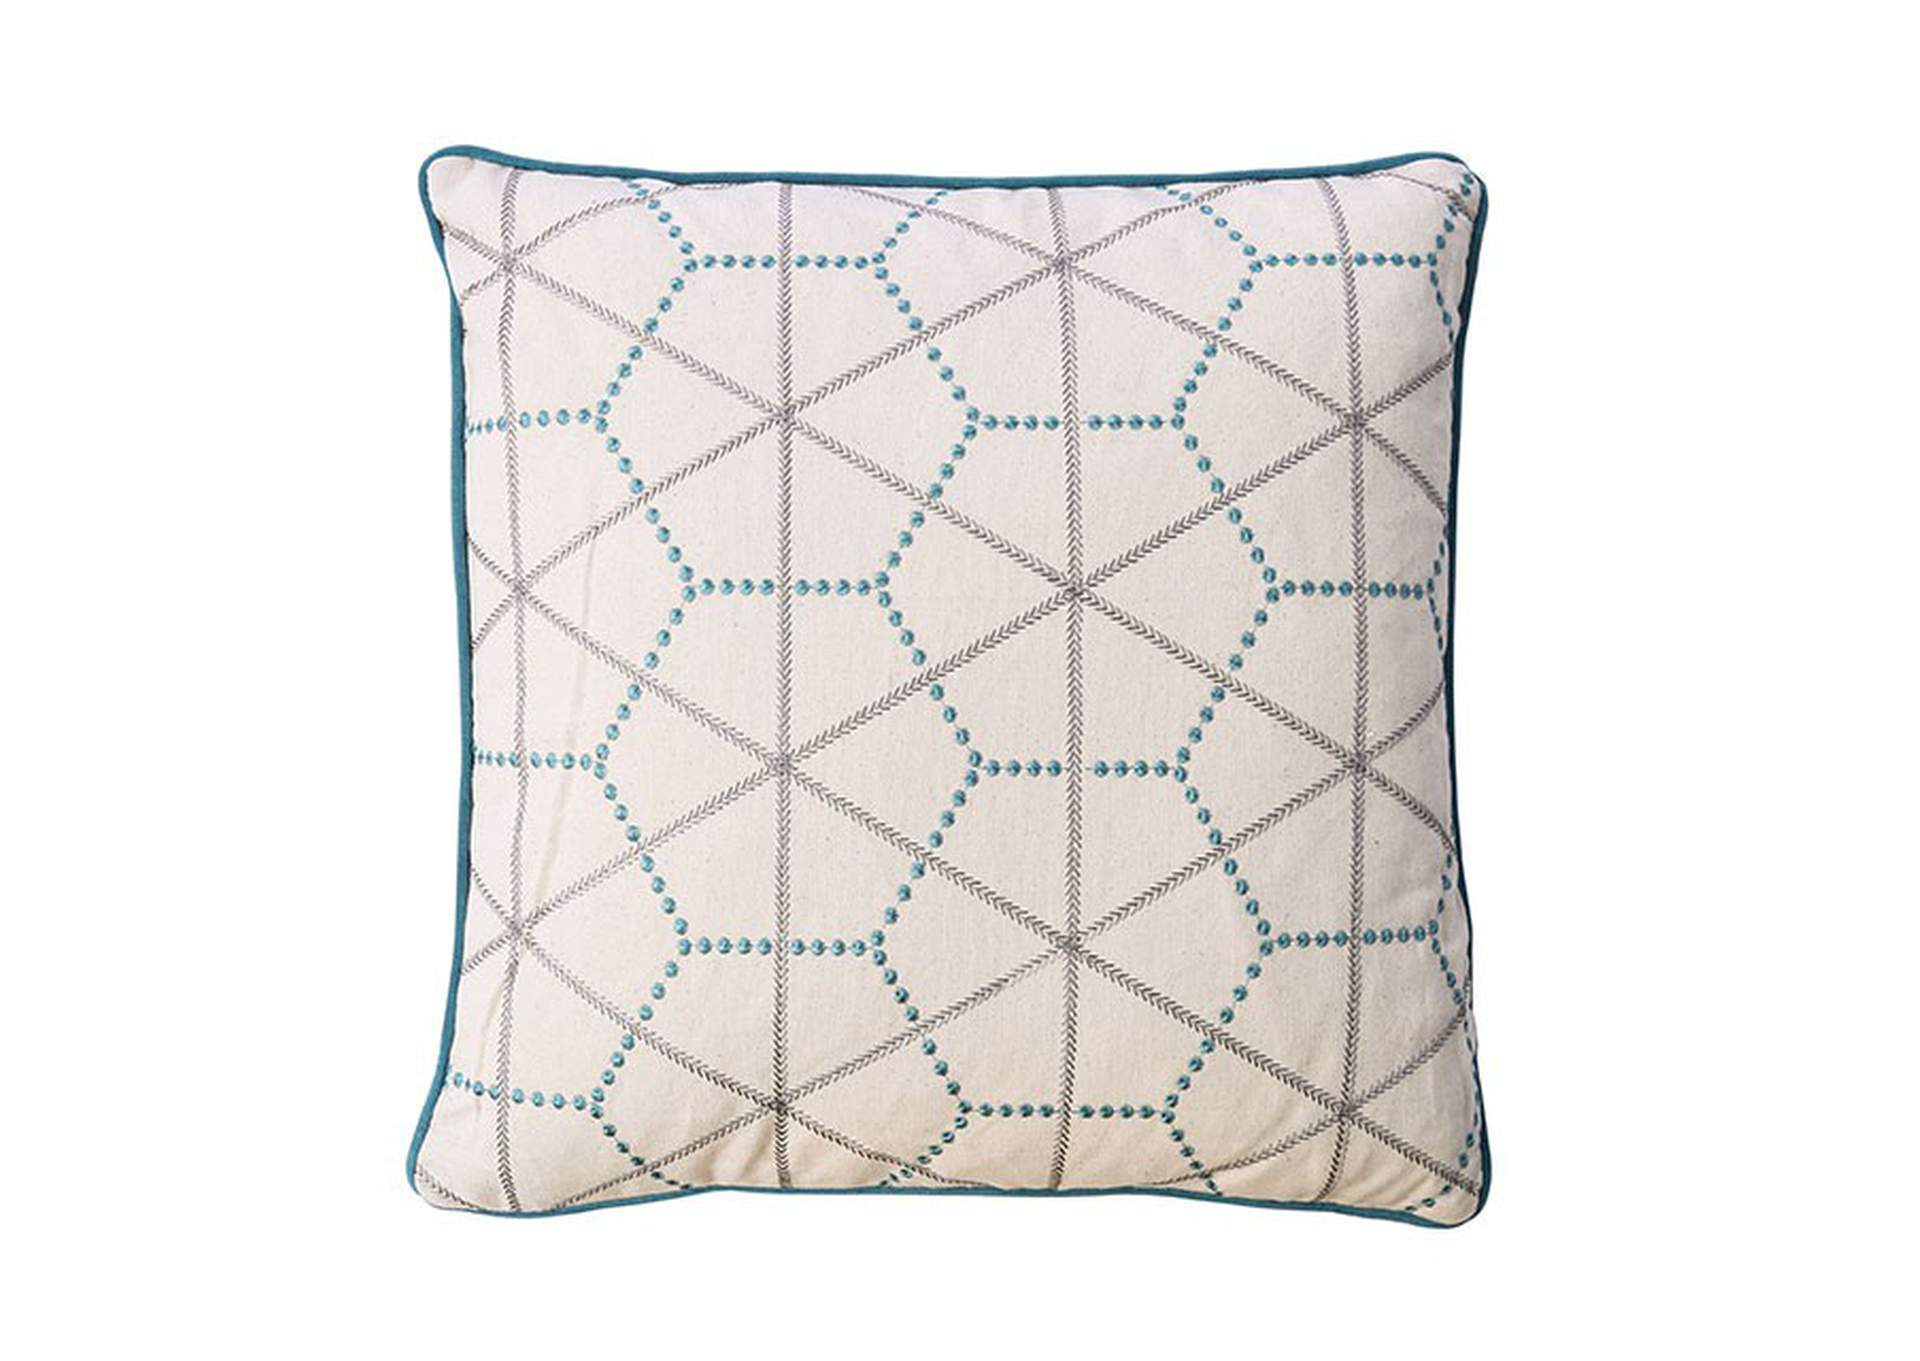 Lee Turquoise Throw Pillow,Furniture of America